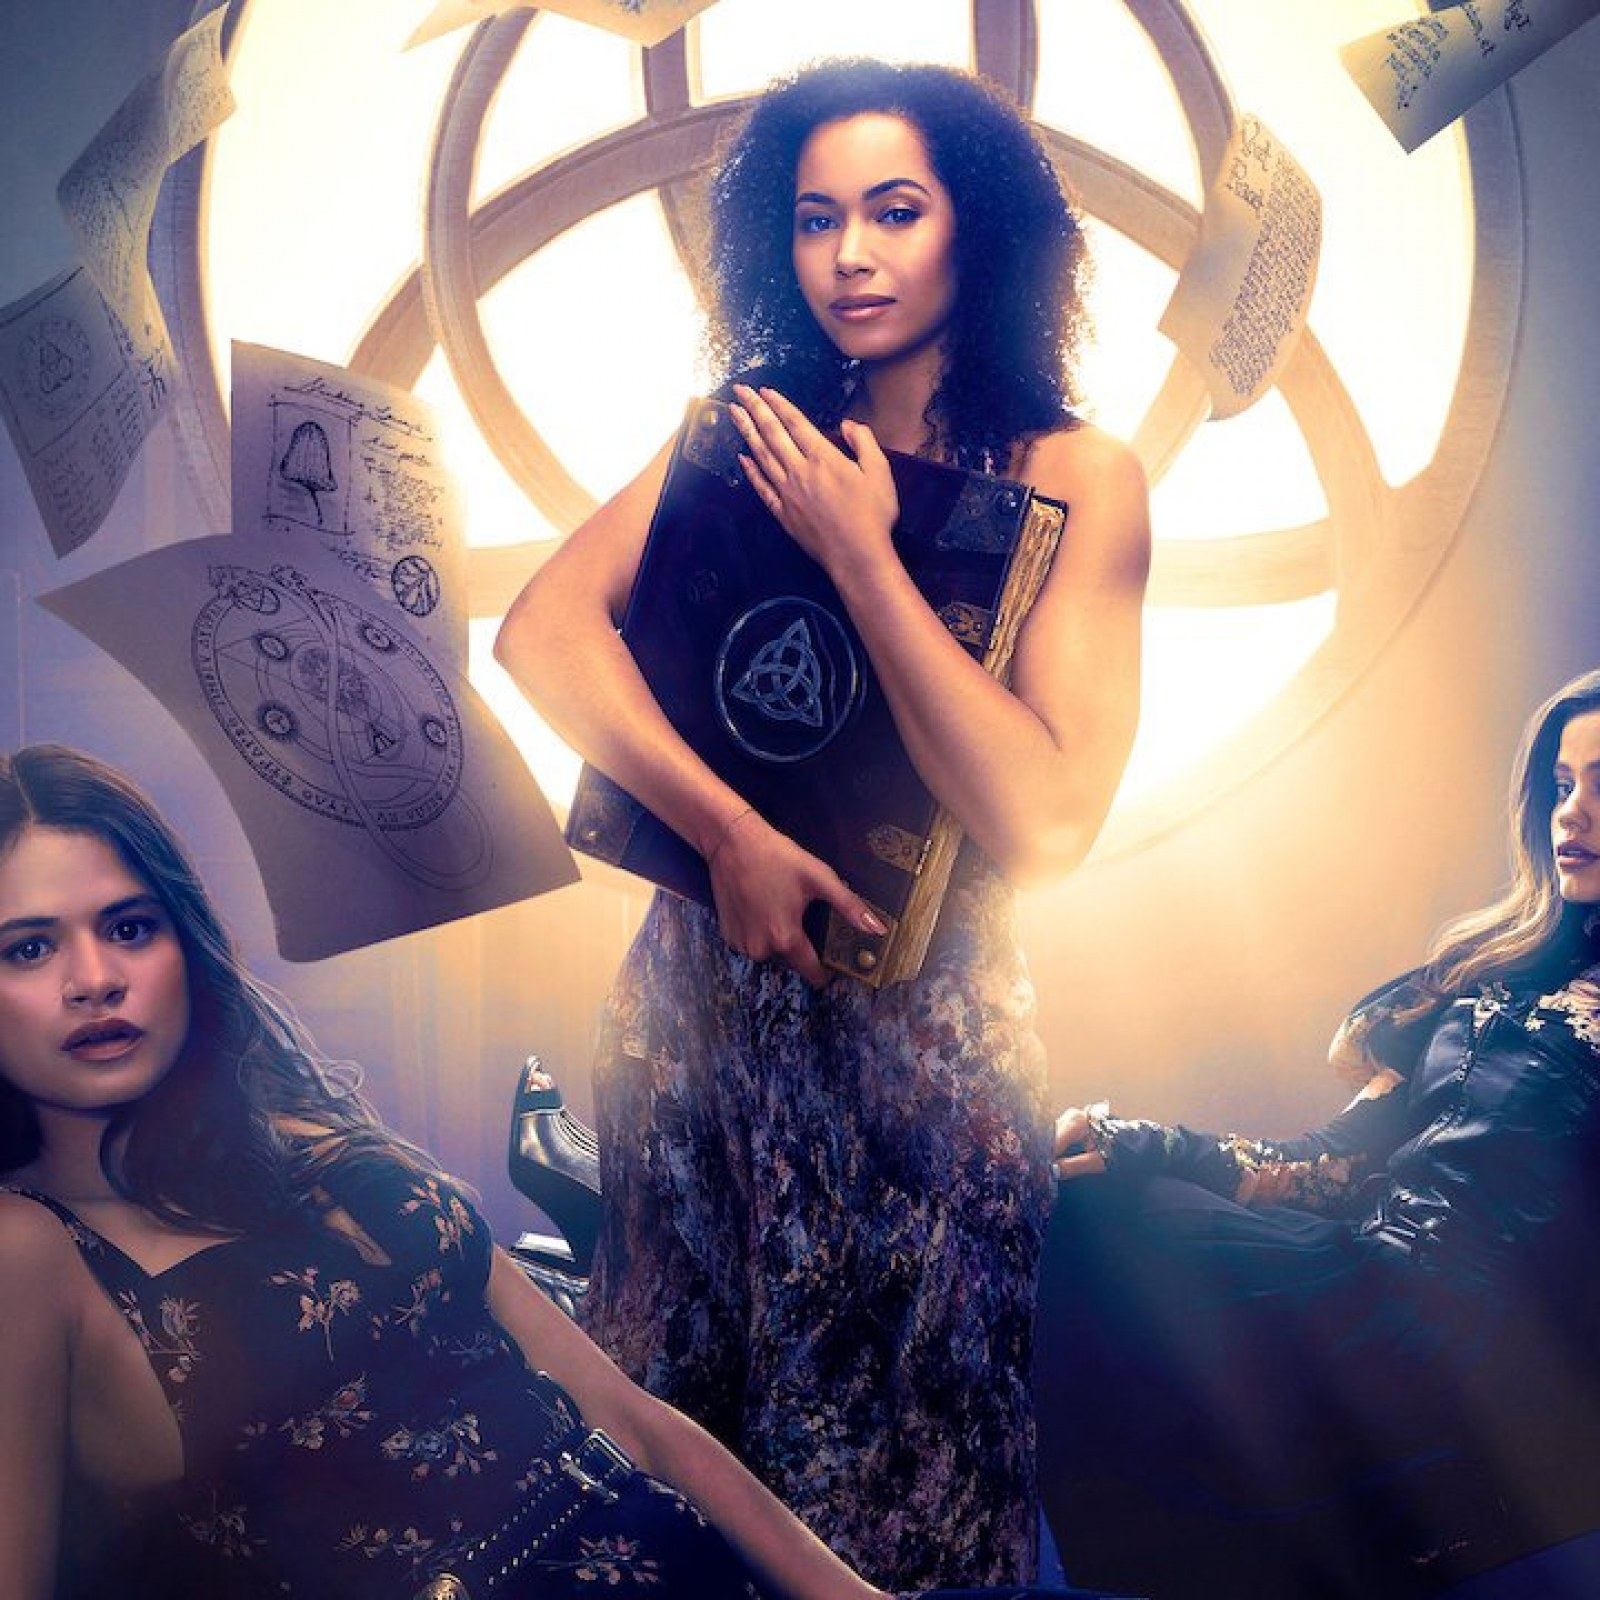 Charmed 2020 Review.Charmed Season 2 Release Date Cast Trailer Plot When Is